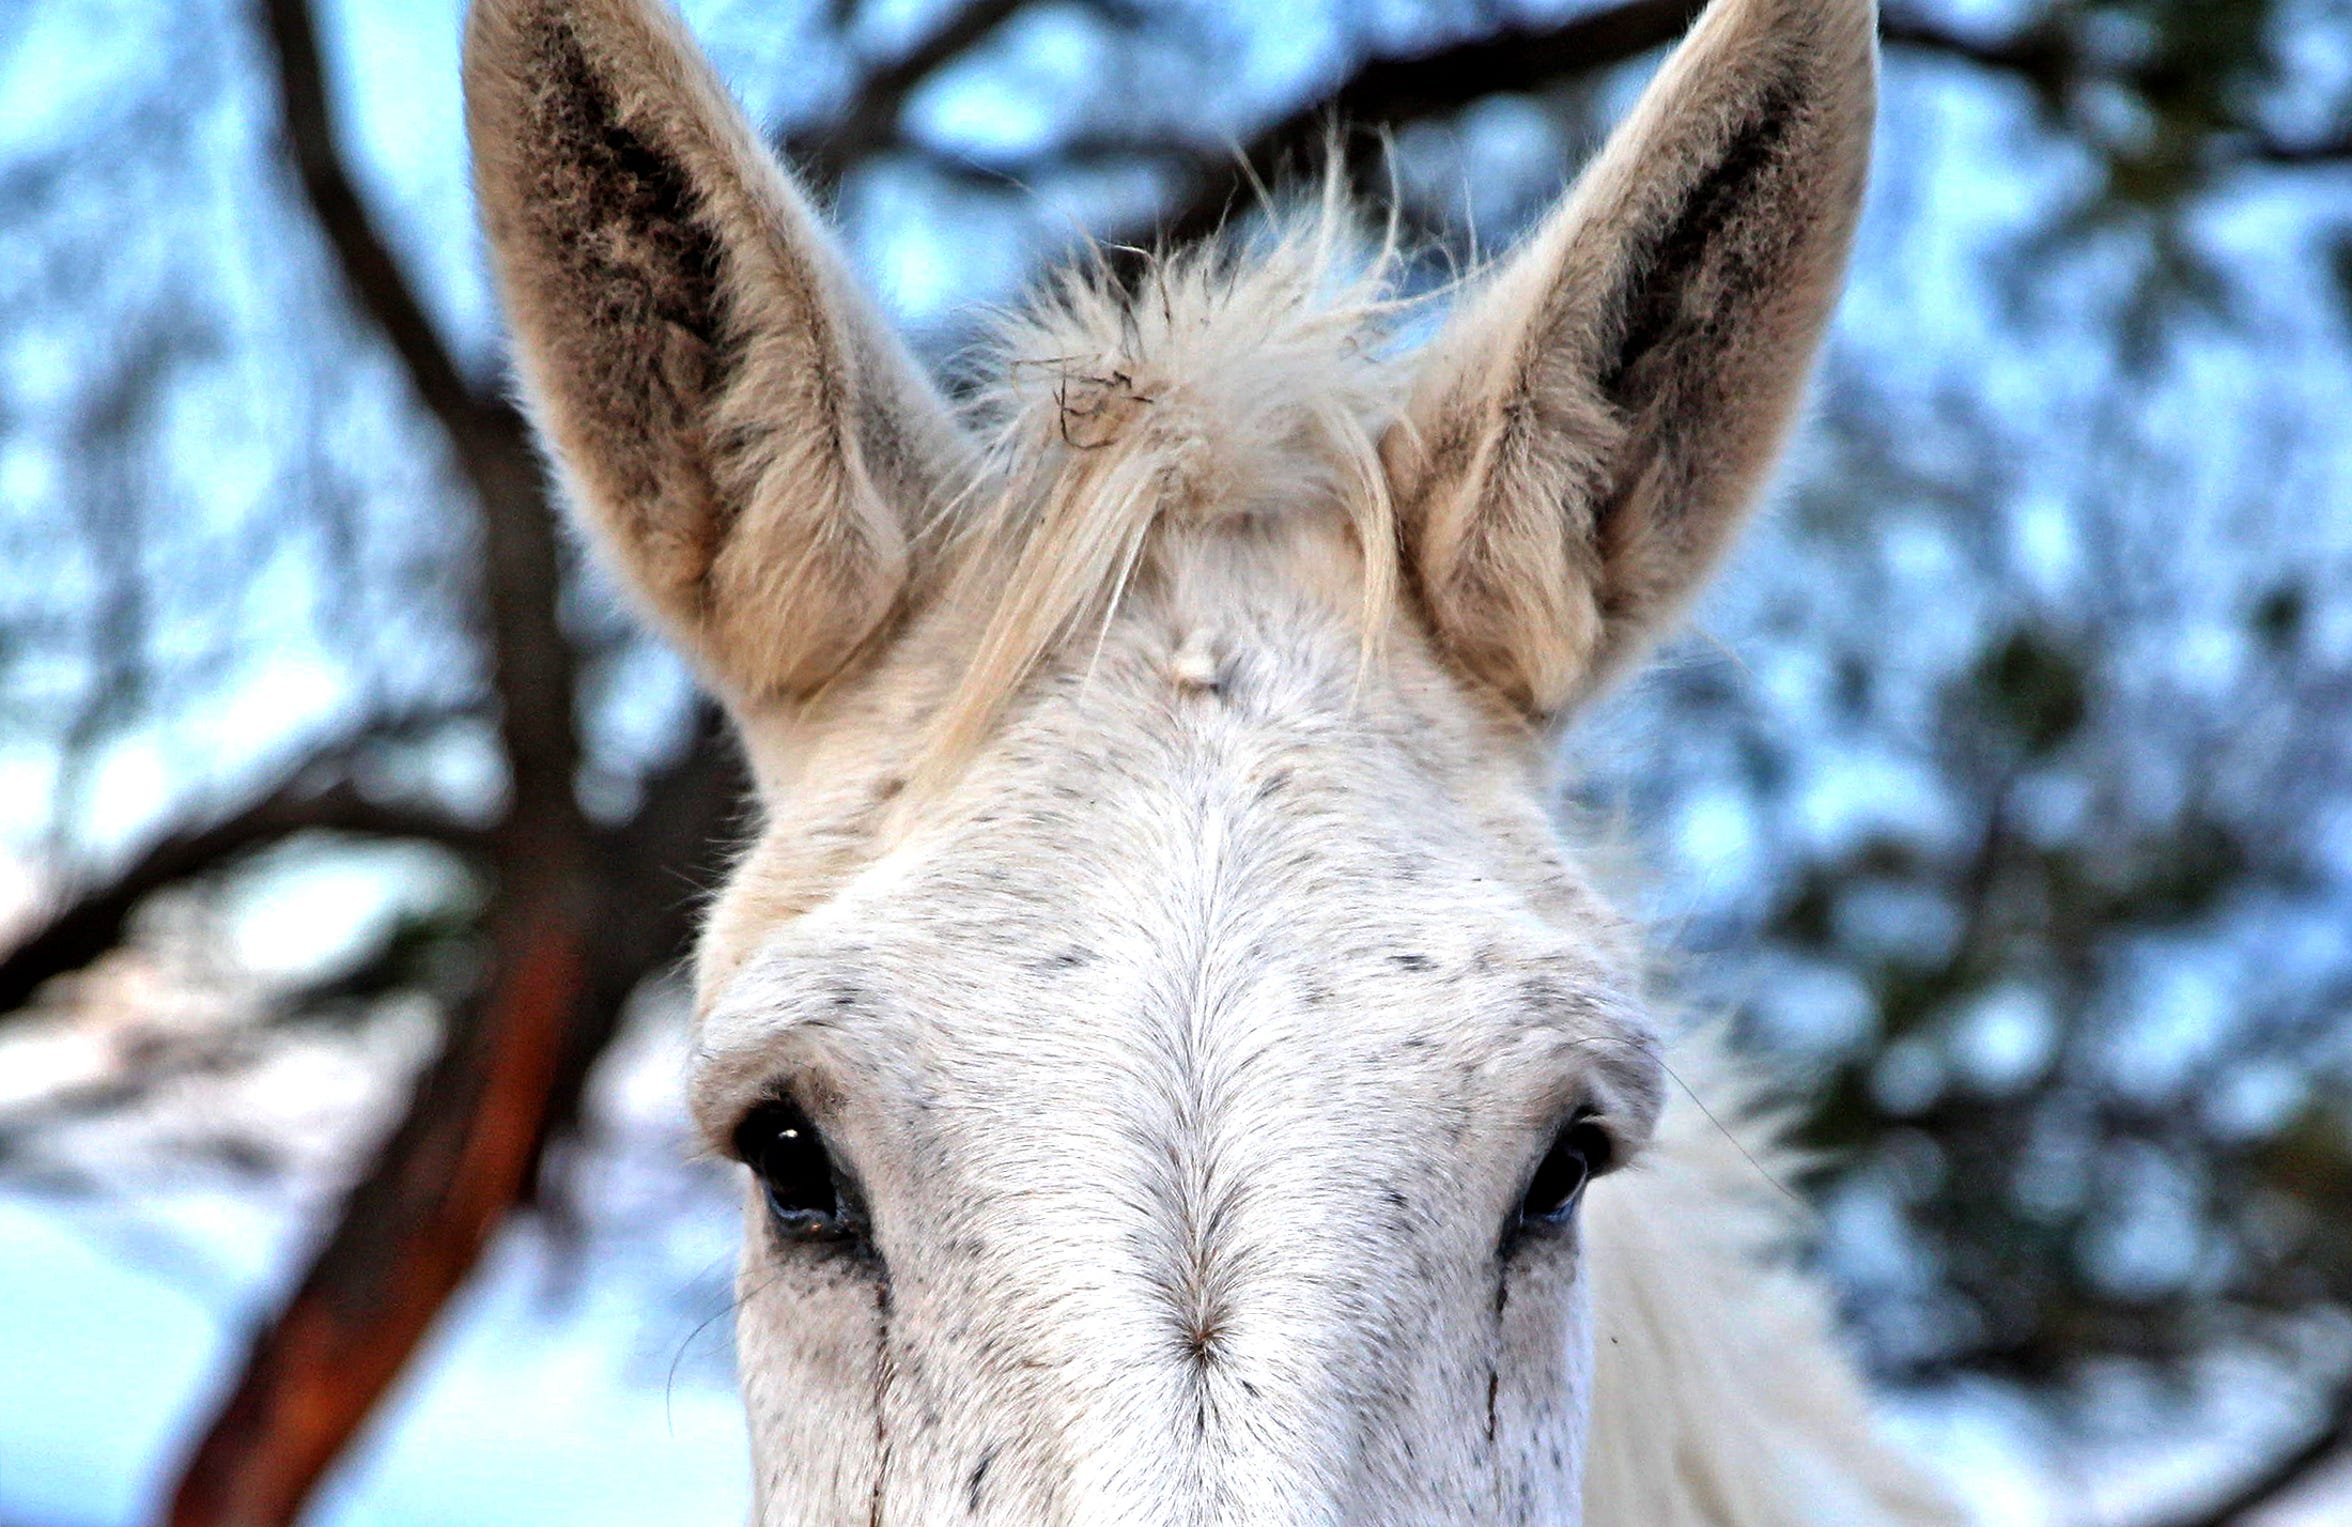 A donkey waits to be fed during the morning feeding time at the Peaceful Valley Donkey Rescue on Tuesday, Nov. 12, 2019.